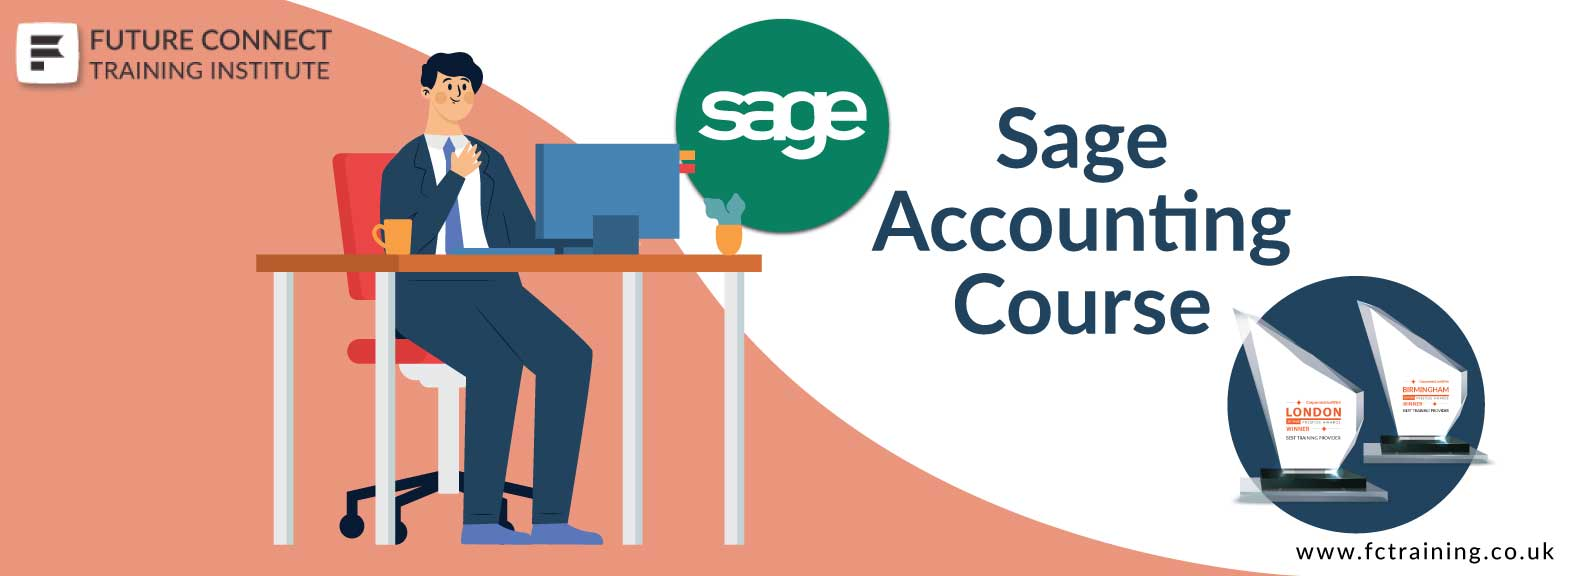 Sage Accounting Course